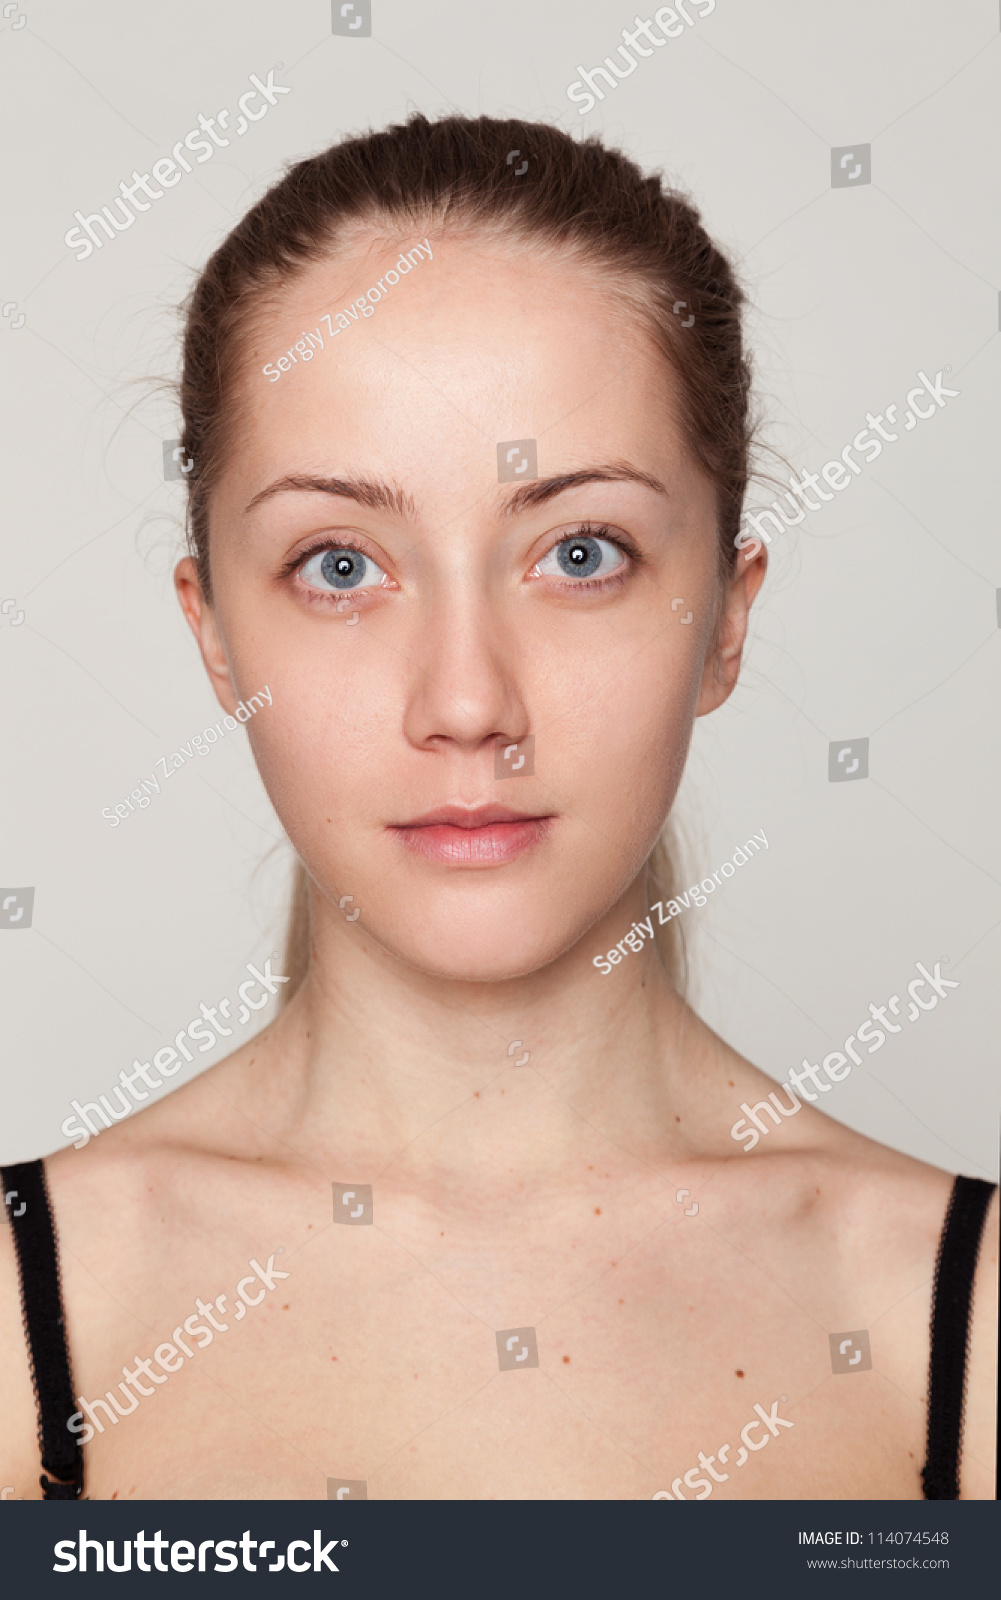 Closeup Face Portrait Young Woman Without Stock Photo 114074548 - Shutterstock